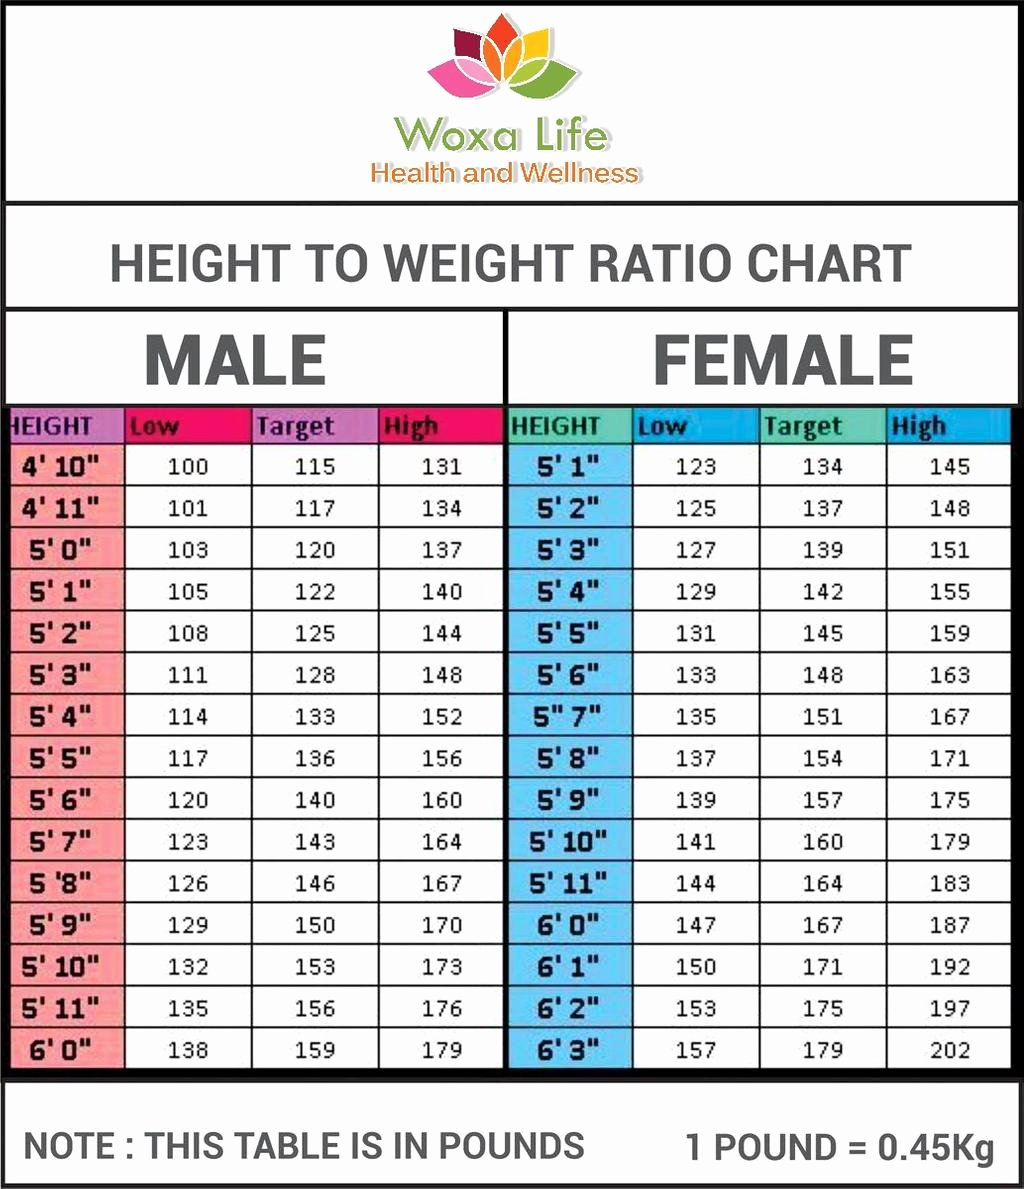 Weight to Heigh Ratio Unique Height to Weight Ratio Chart by atuls218 On Deviantart